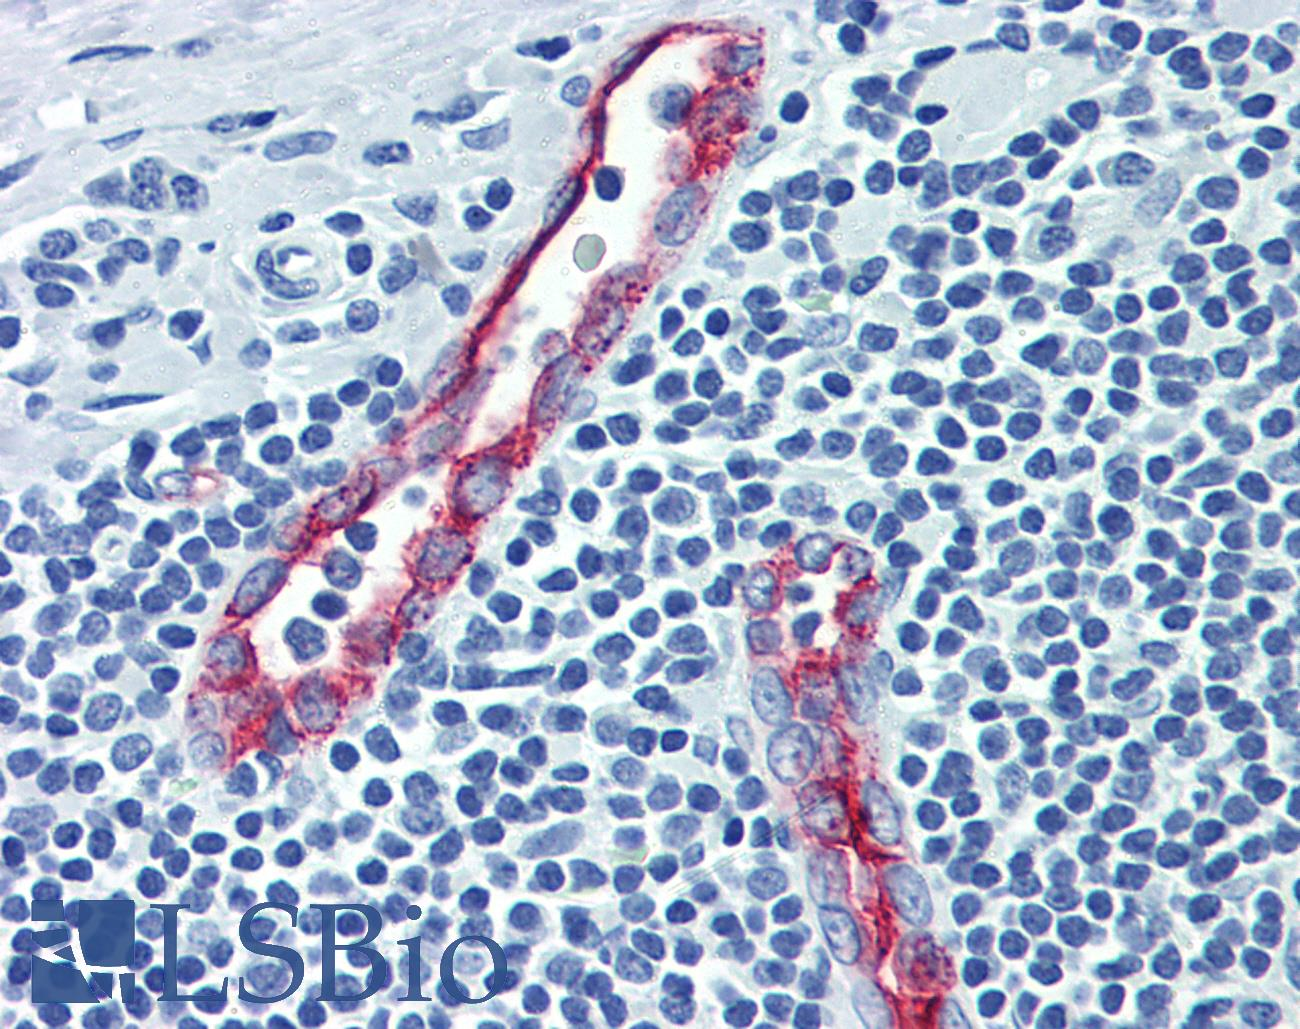 SELP / P-Selectin / CD62P Antibody - Anti-CD62P antibody IHC of human tonsil. Immunohistochemistry of formalin-fixed, paraffin-embedded tissue after heat-induced antigen retrieval. Antibody concentration 10 ug/ml.